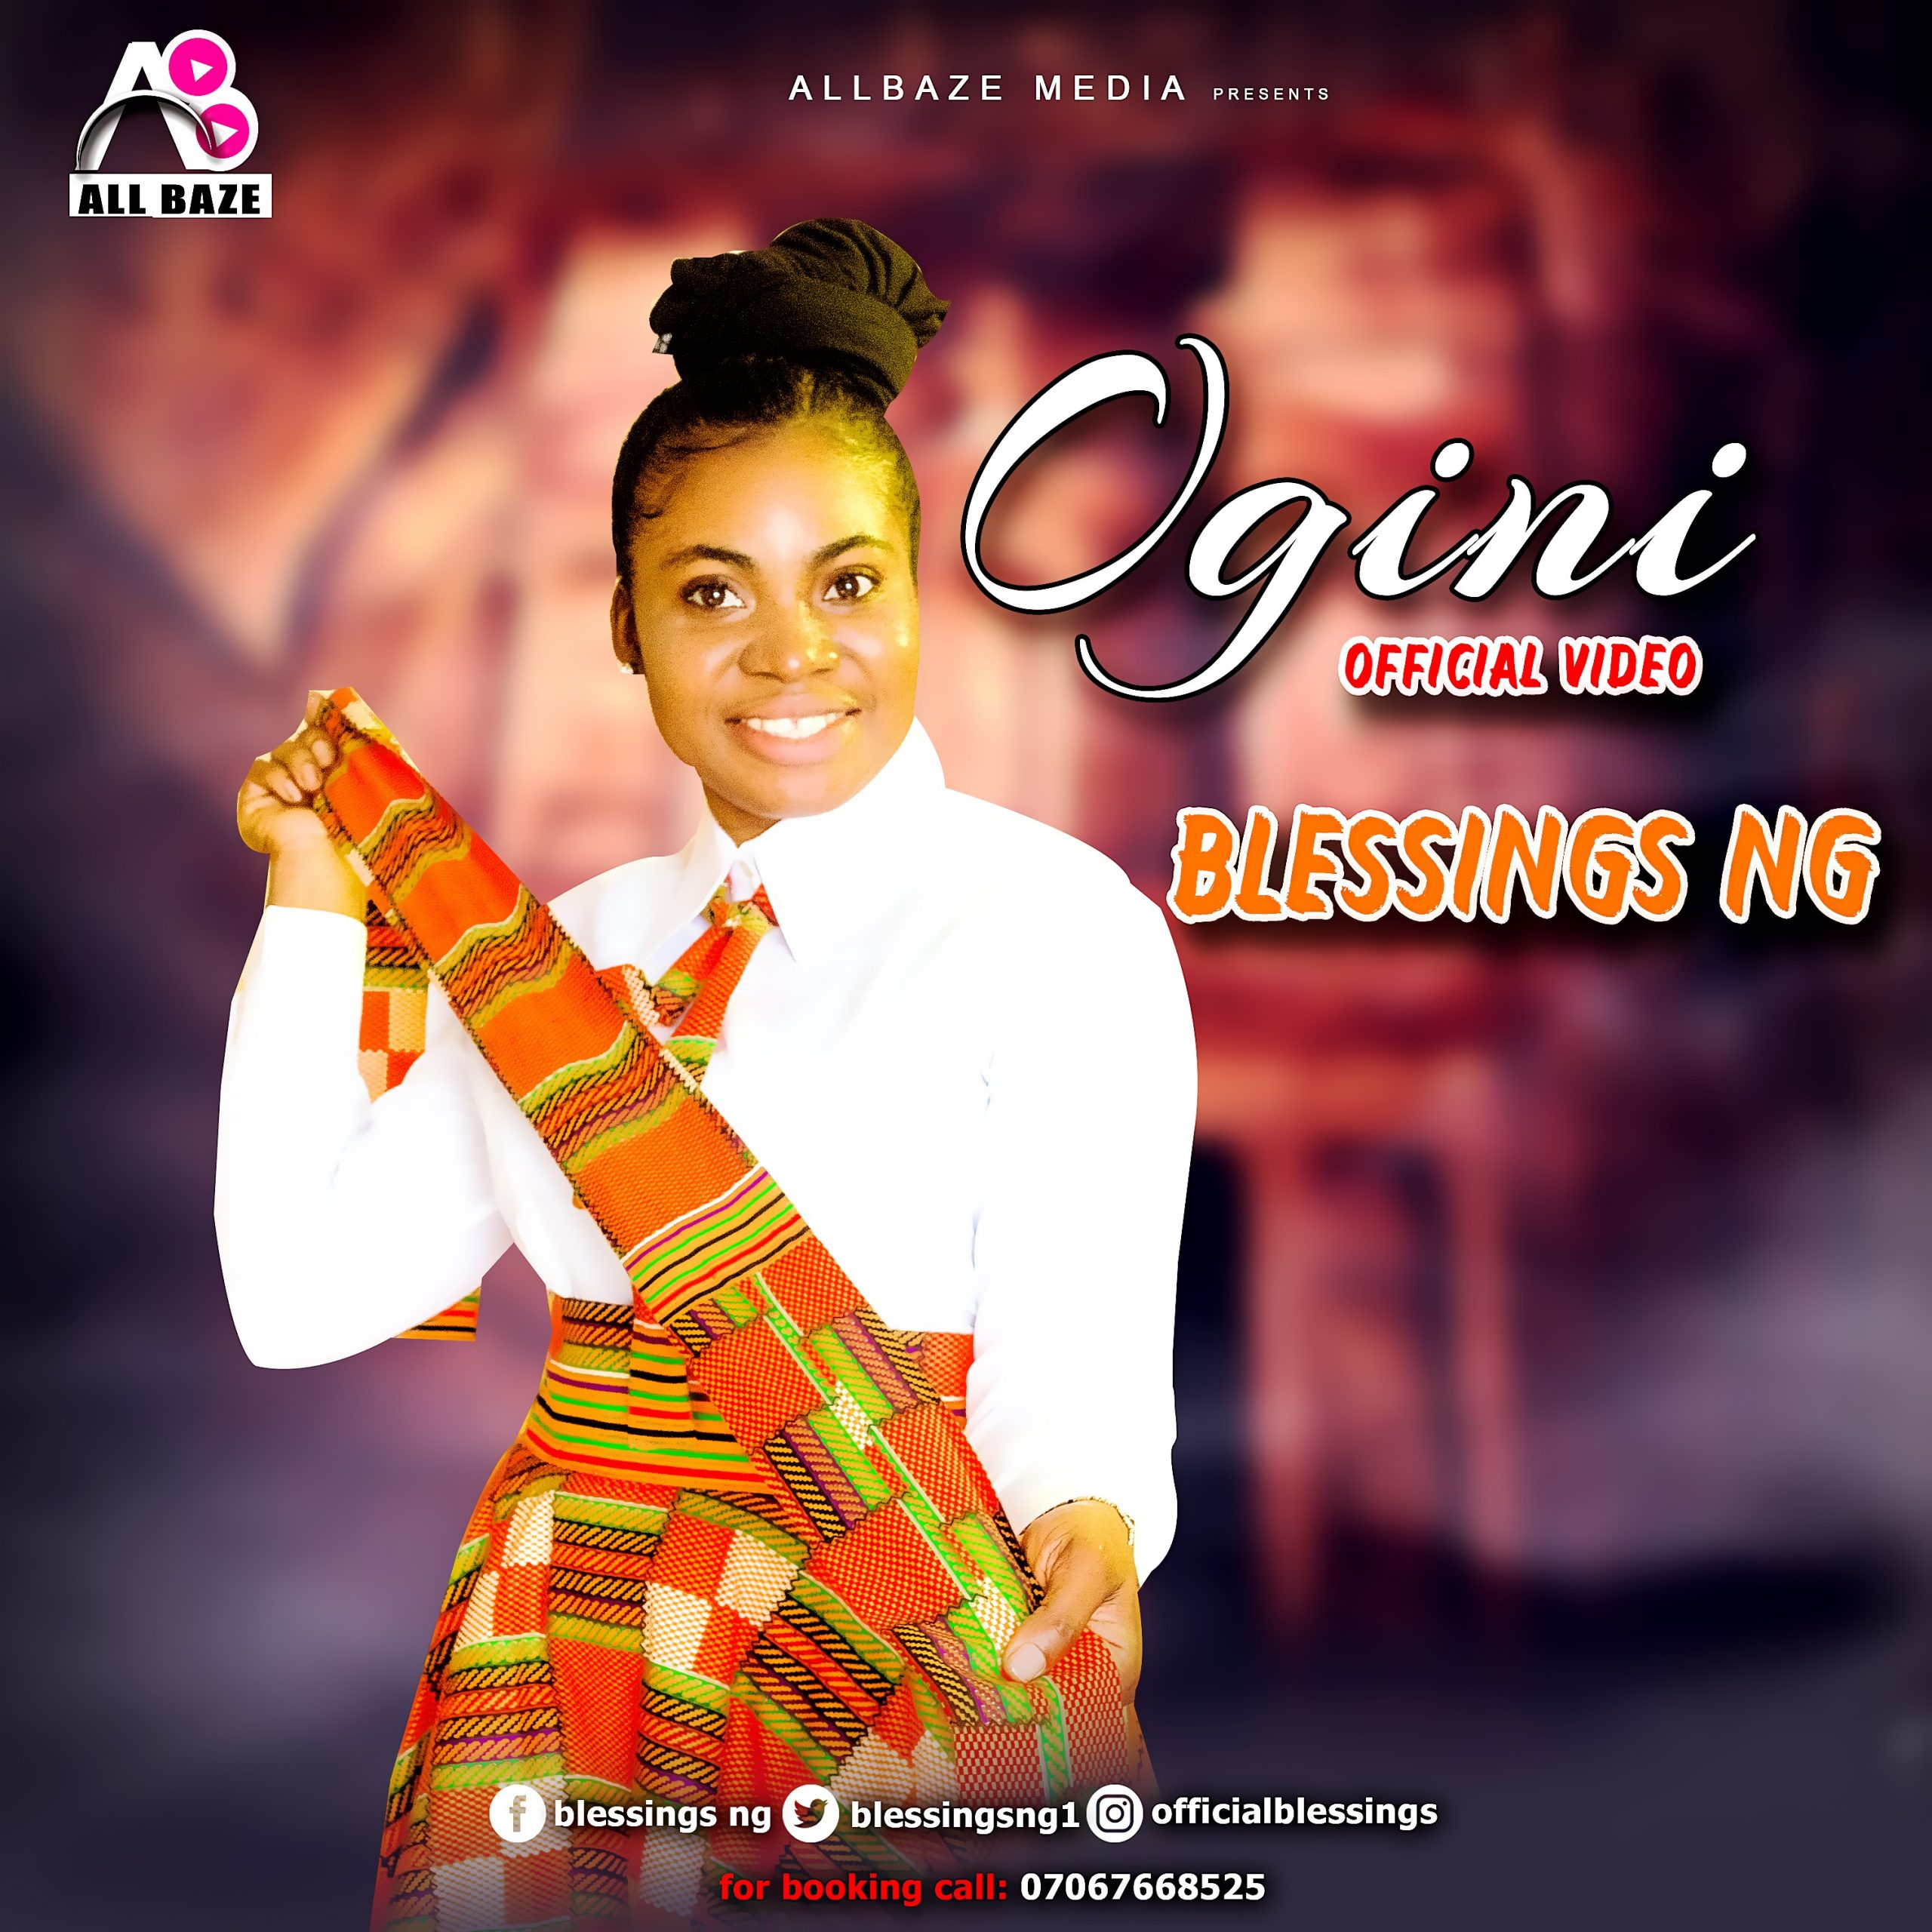 Download Blessings Ng Ogini Video